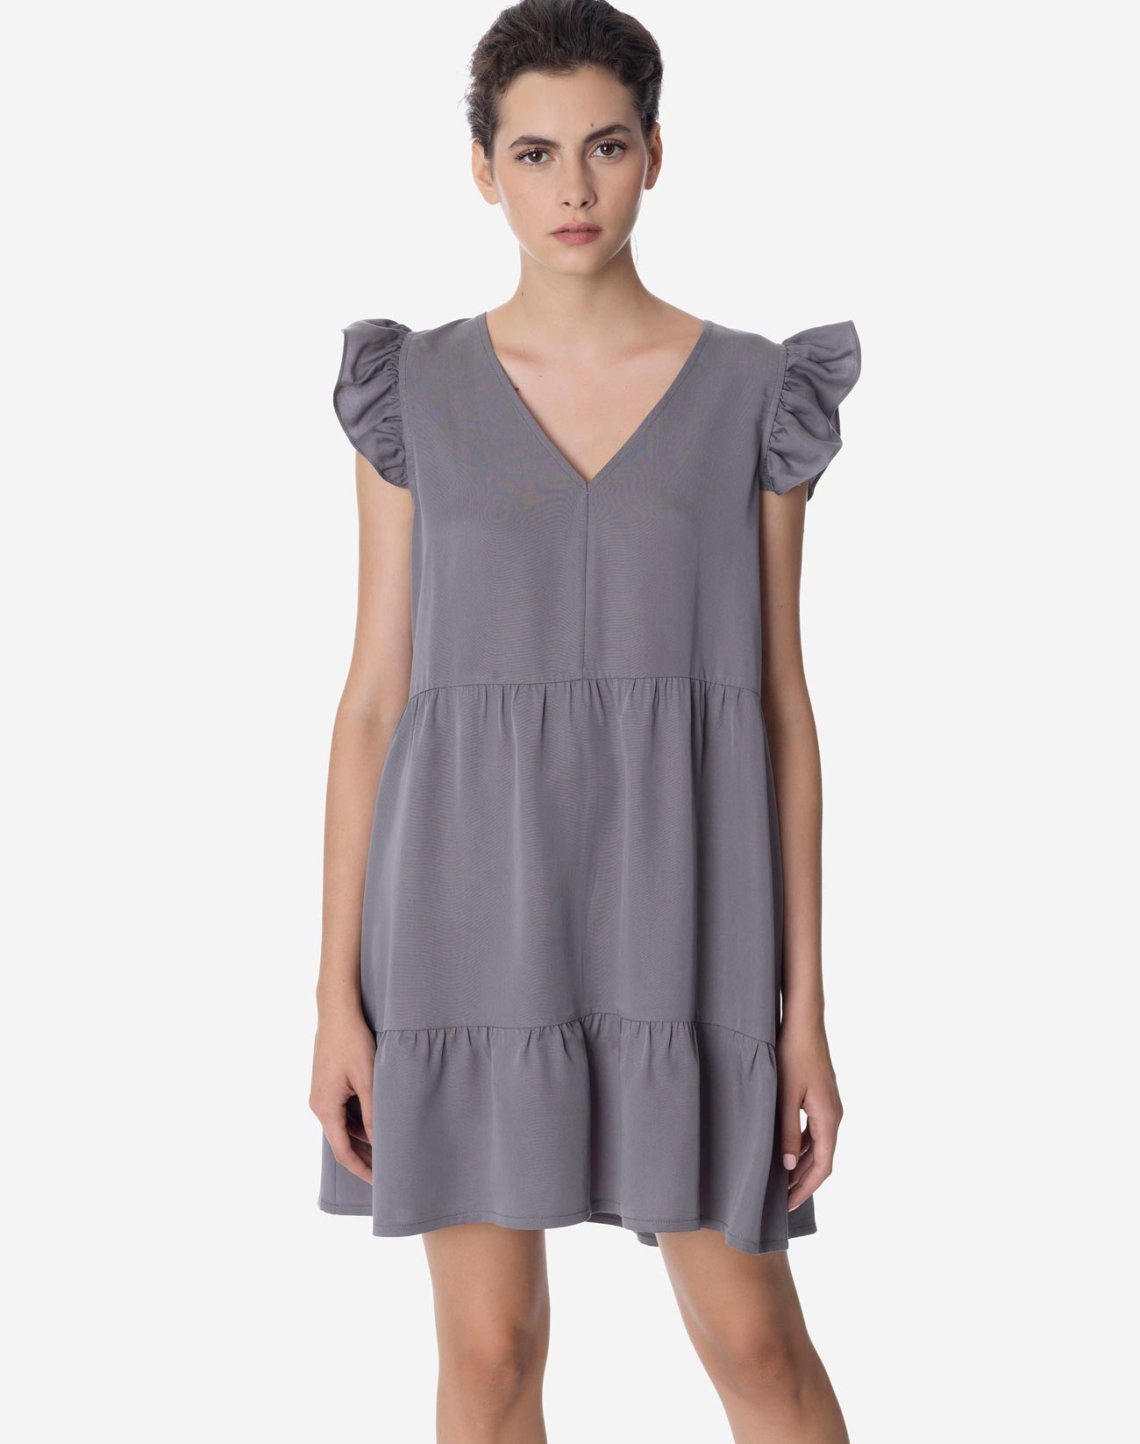 Mini dress with ruffles